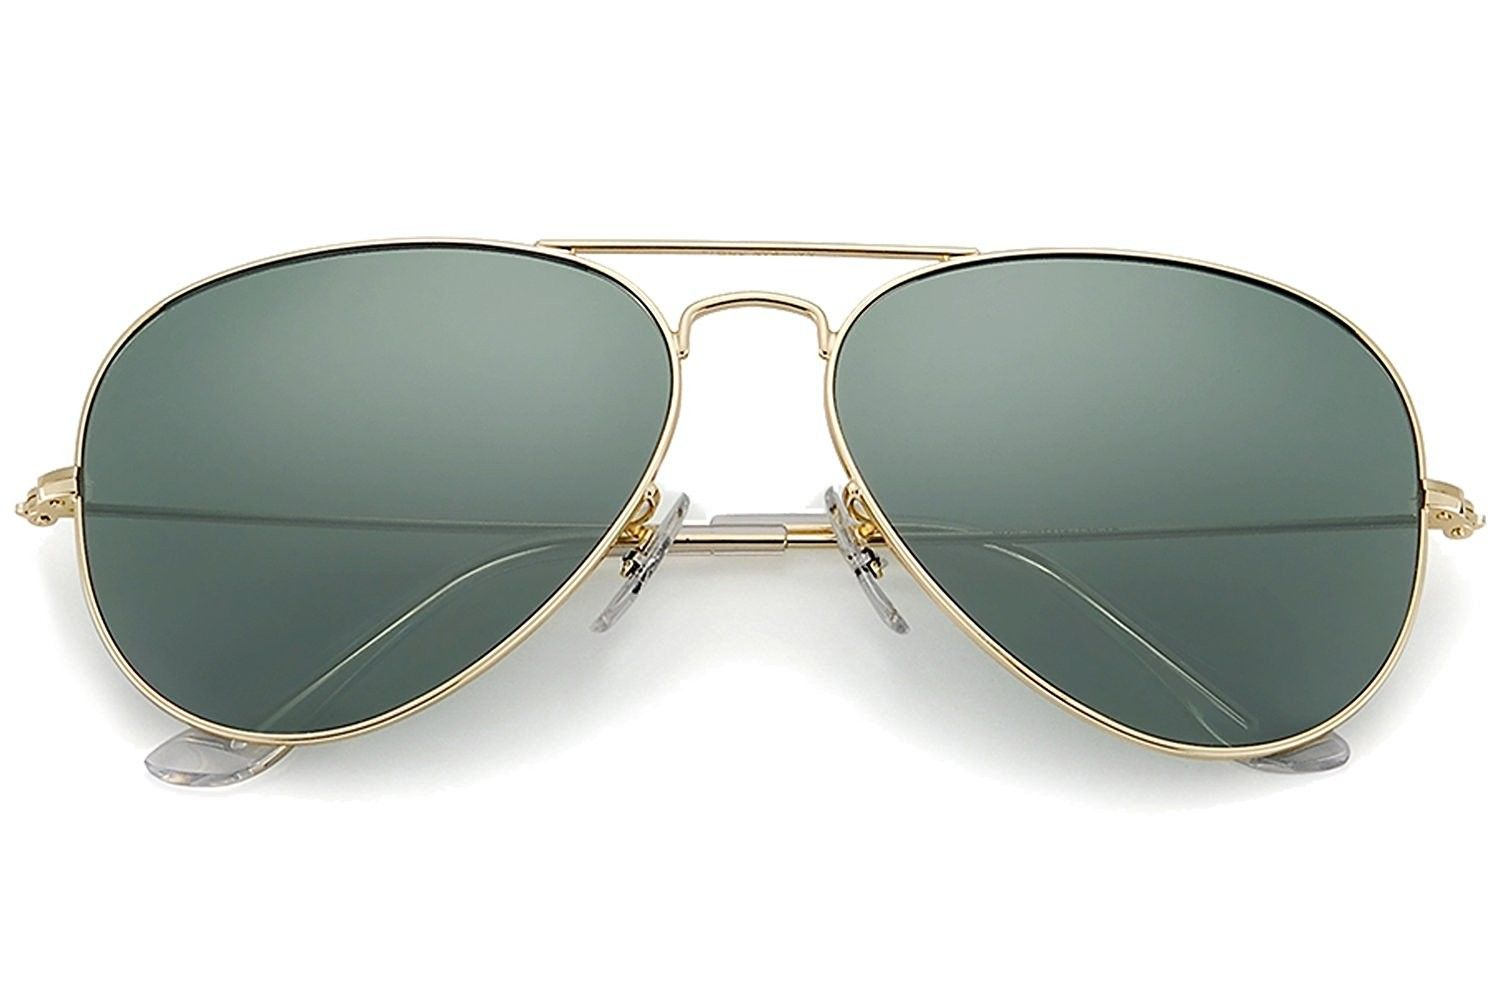 3db34c68afe5 Polarized Aviator Sunglasses for Men and Women - Gold Frame Black Green Lens  - CZ186KE6DNL - Women s Sunglasses